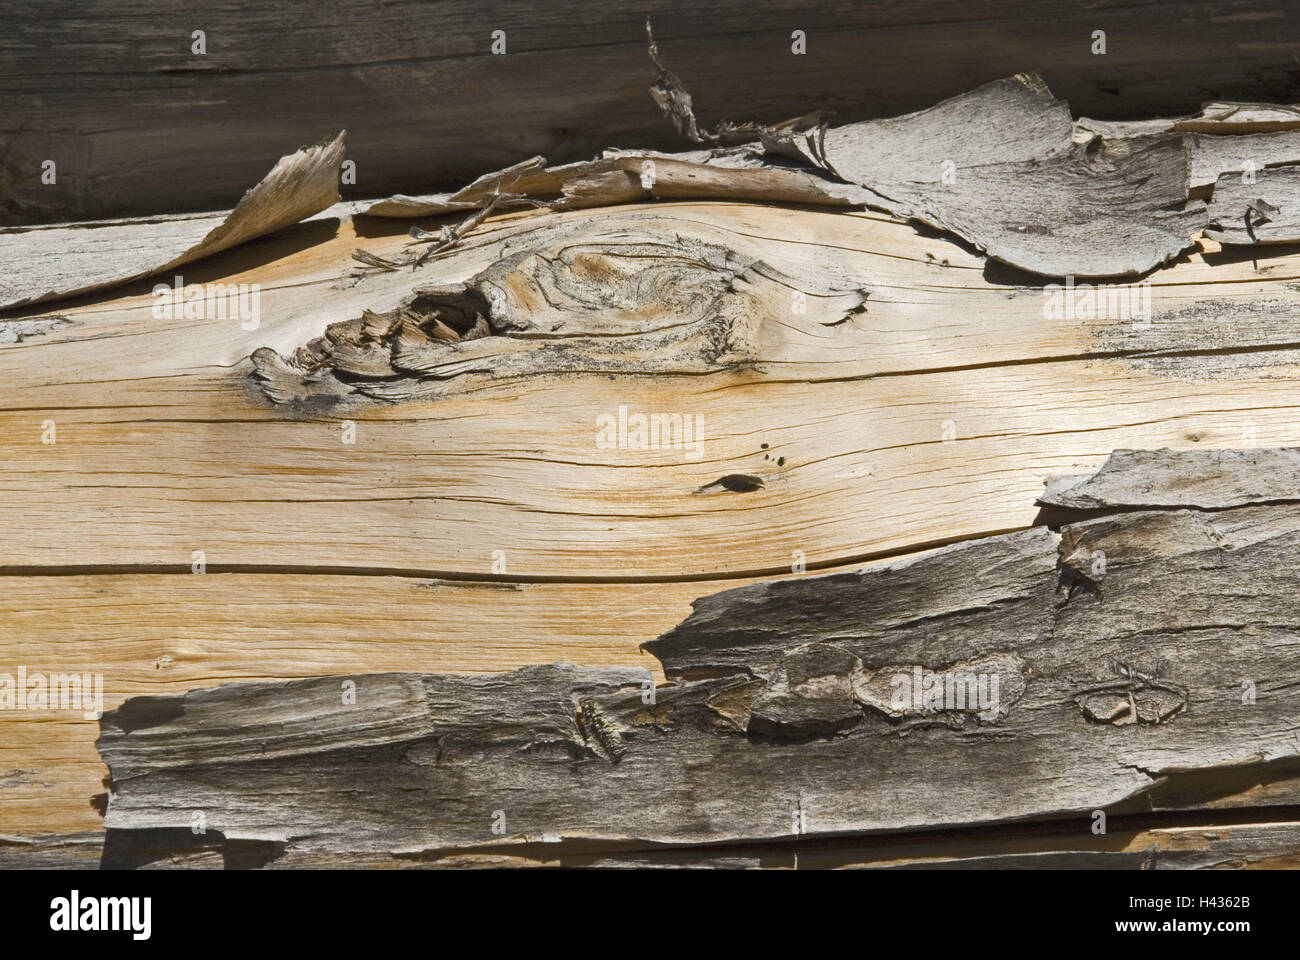 wooden, old, weather-beaten, detail, branch, fibres, wooden strain, trunk, old, knothole, tree bark, crust, wooden - Stock Image